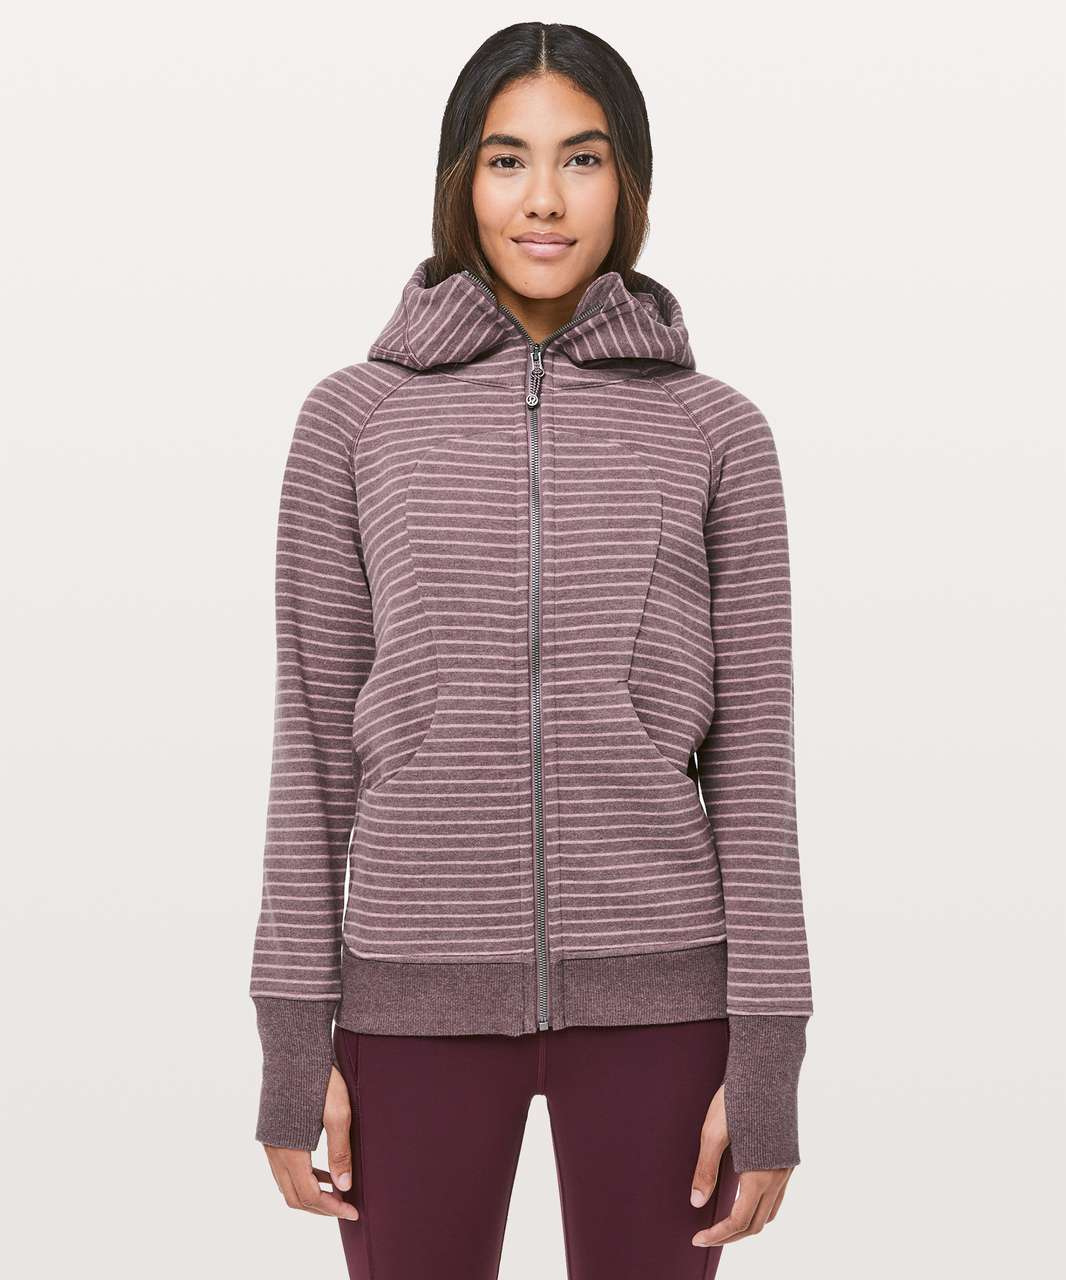 Lululemon Scuba Hoodie *Classic Cotton Fleece - Parallel Stripe Heathered Antique Bark Heathered Misty Merlot